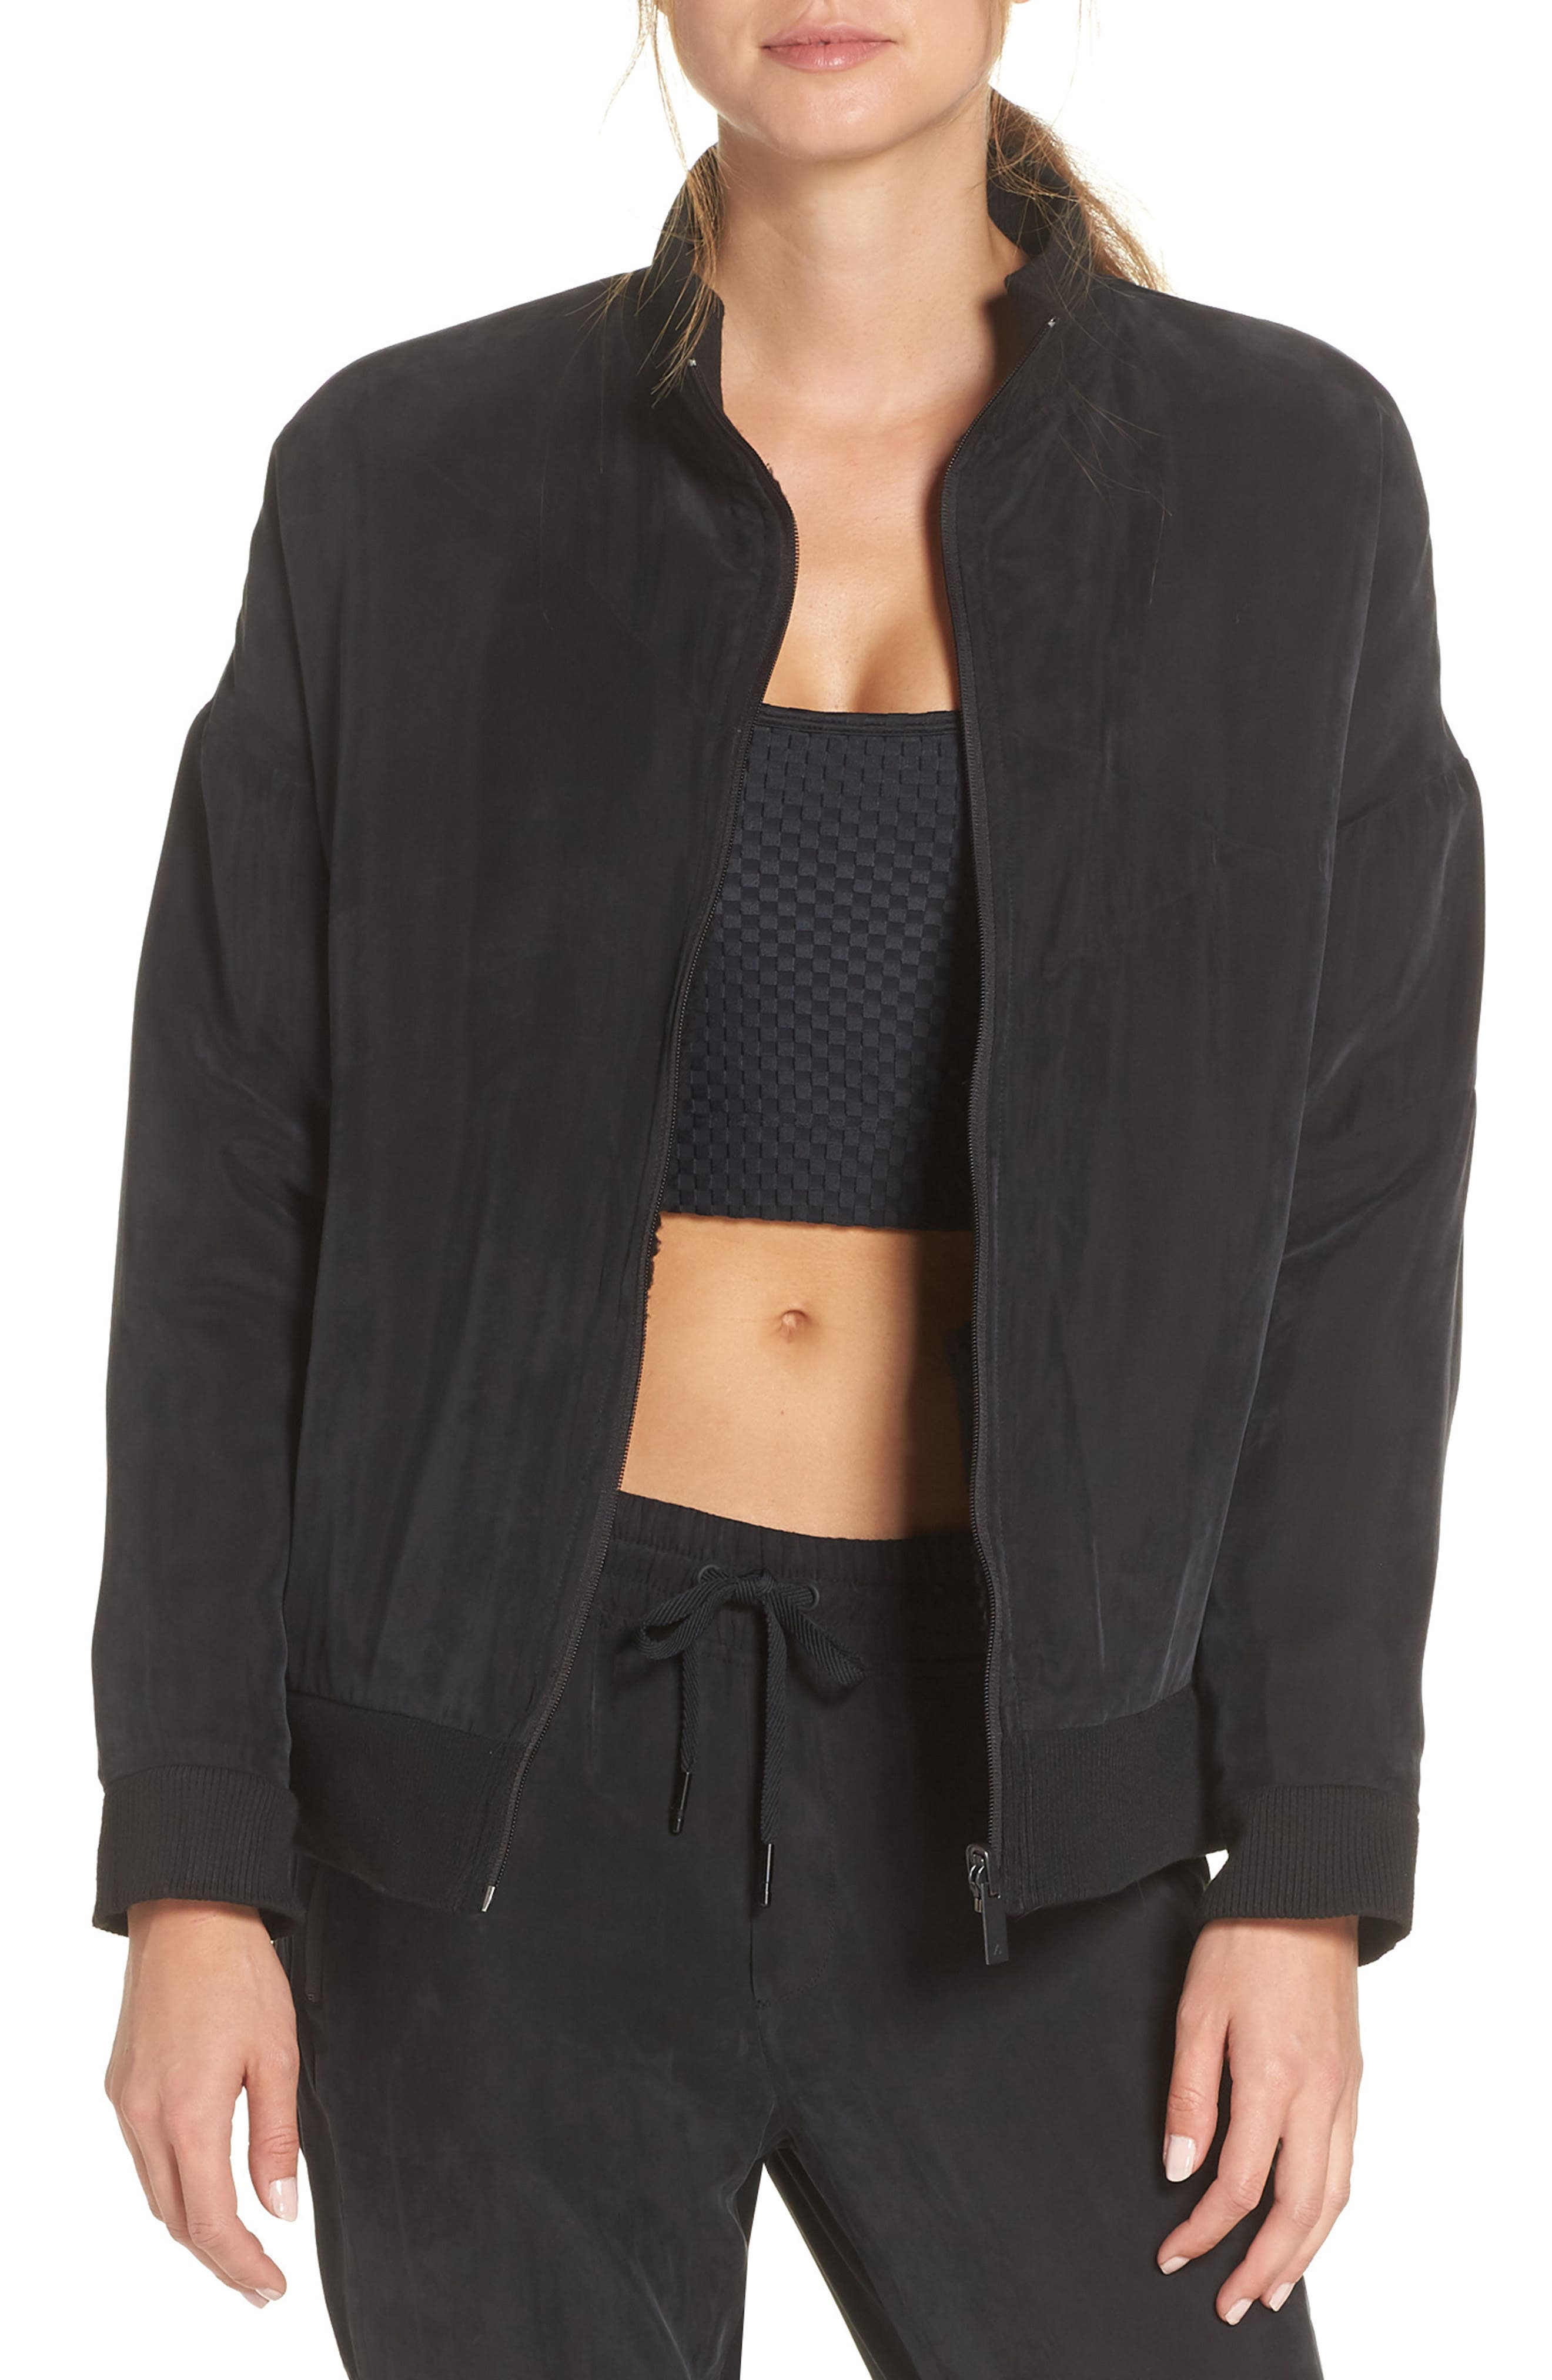 Arcs Reversible Bomber Jacket,                         Main,                         color, BLACK